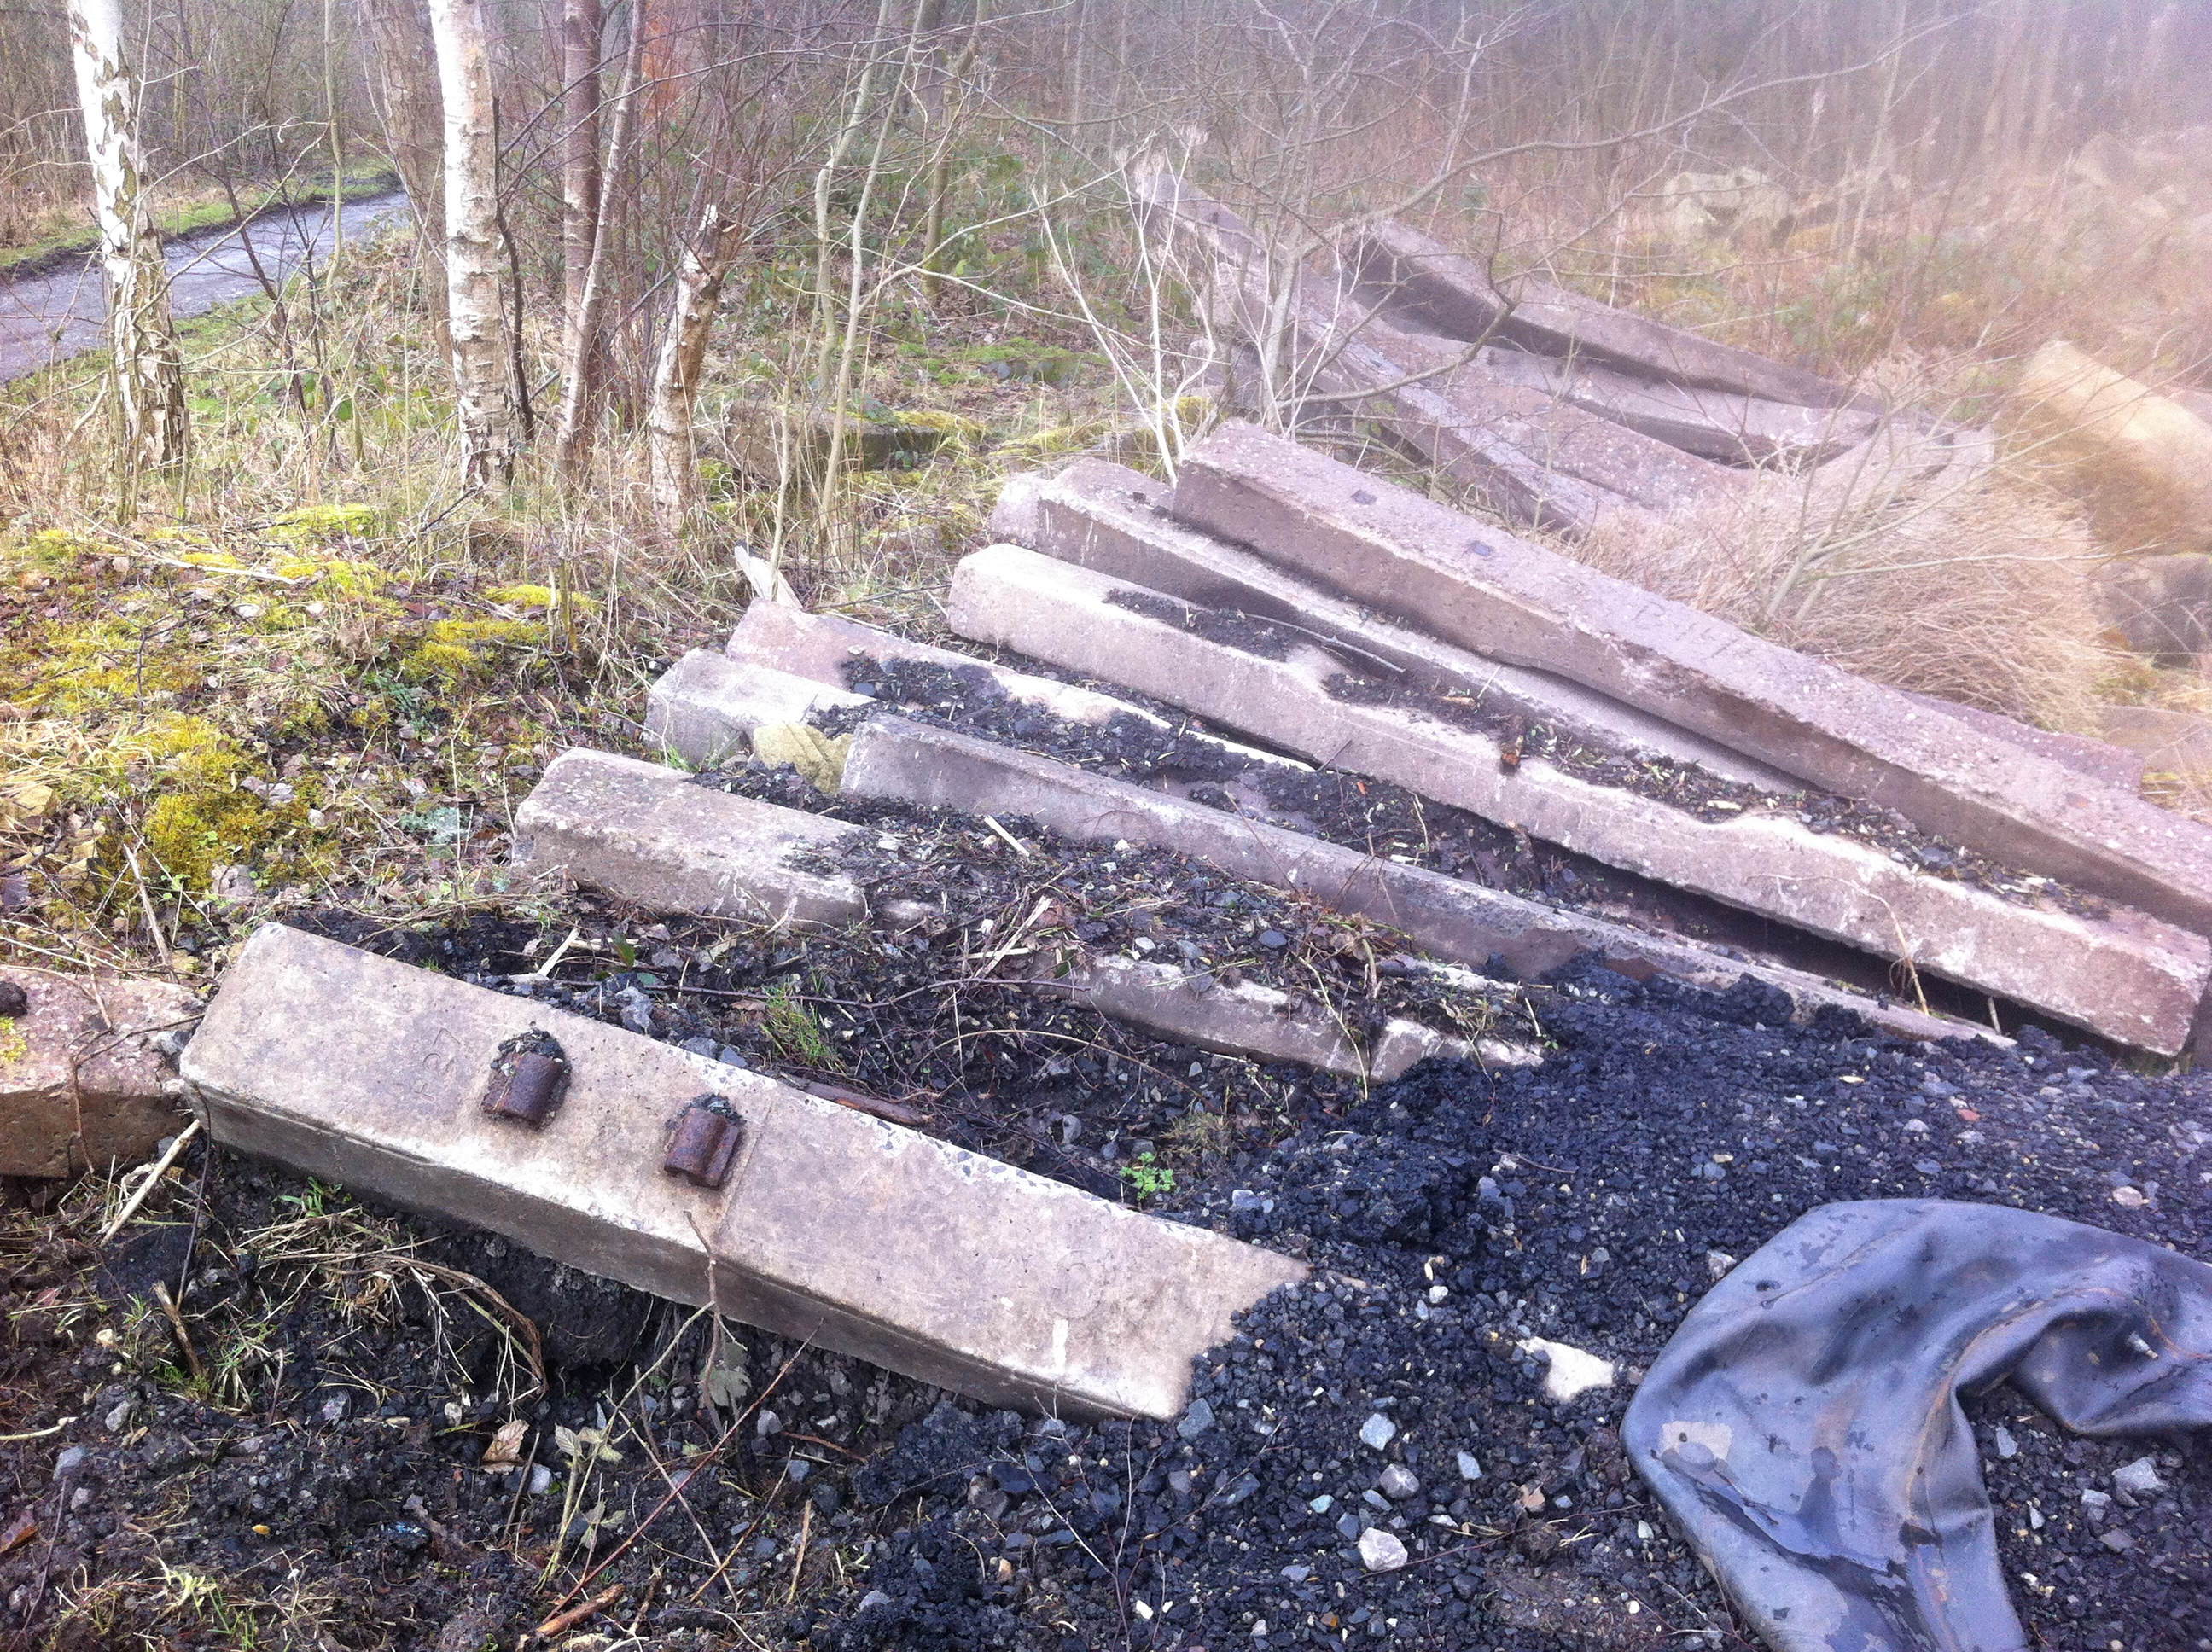 Concrete Sleepers at site of Beamish Station Goods Yard 1